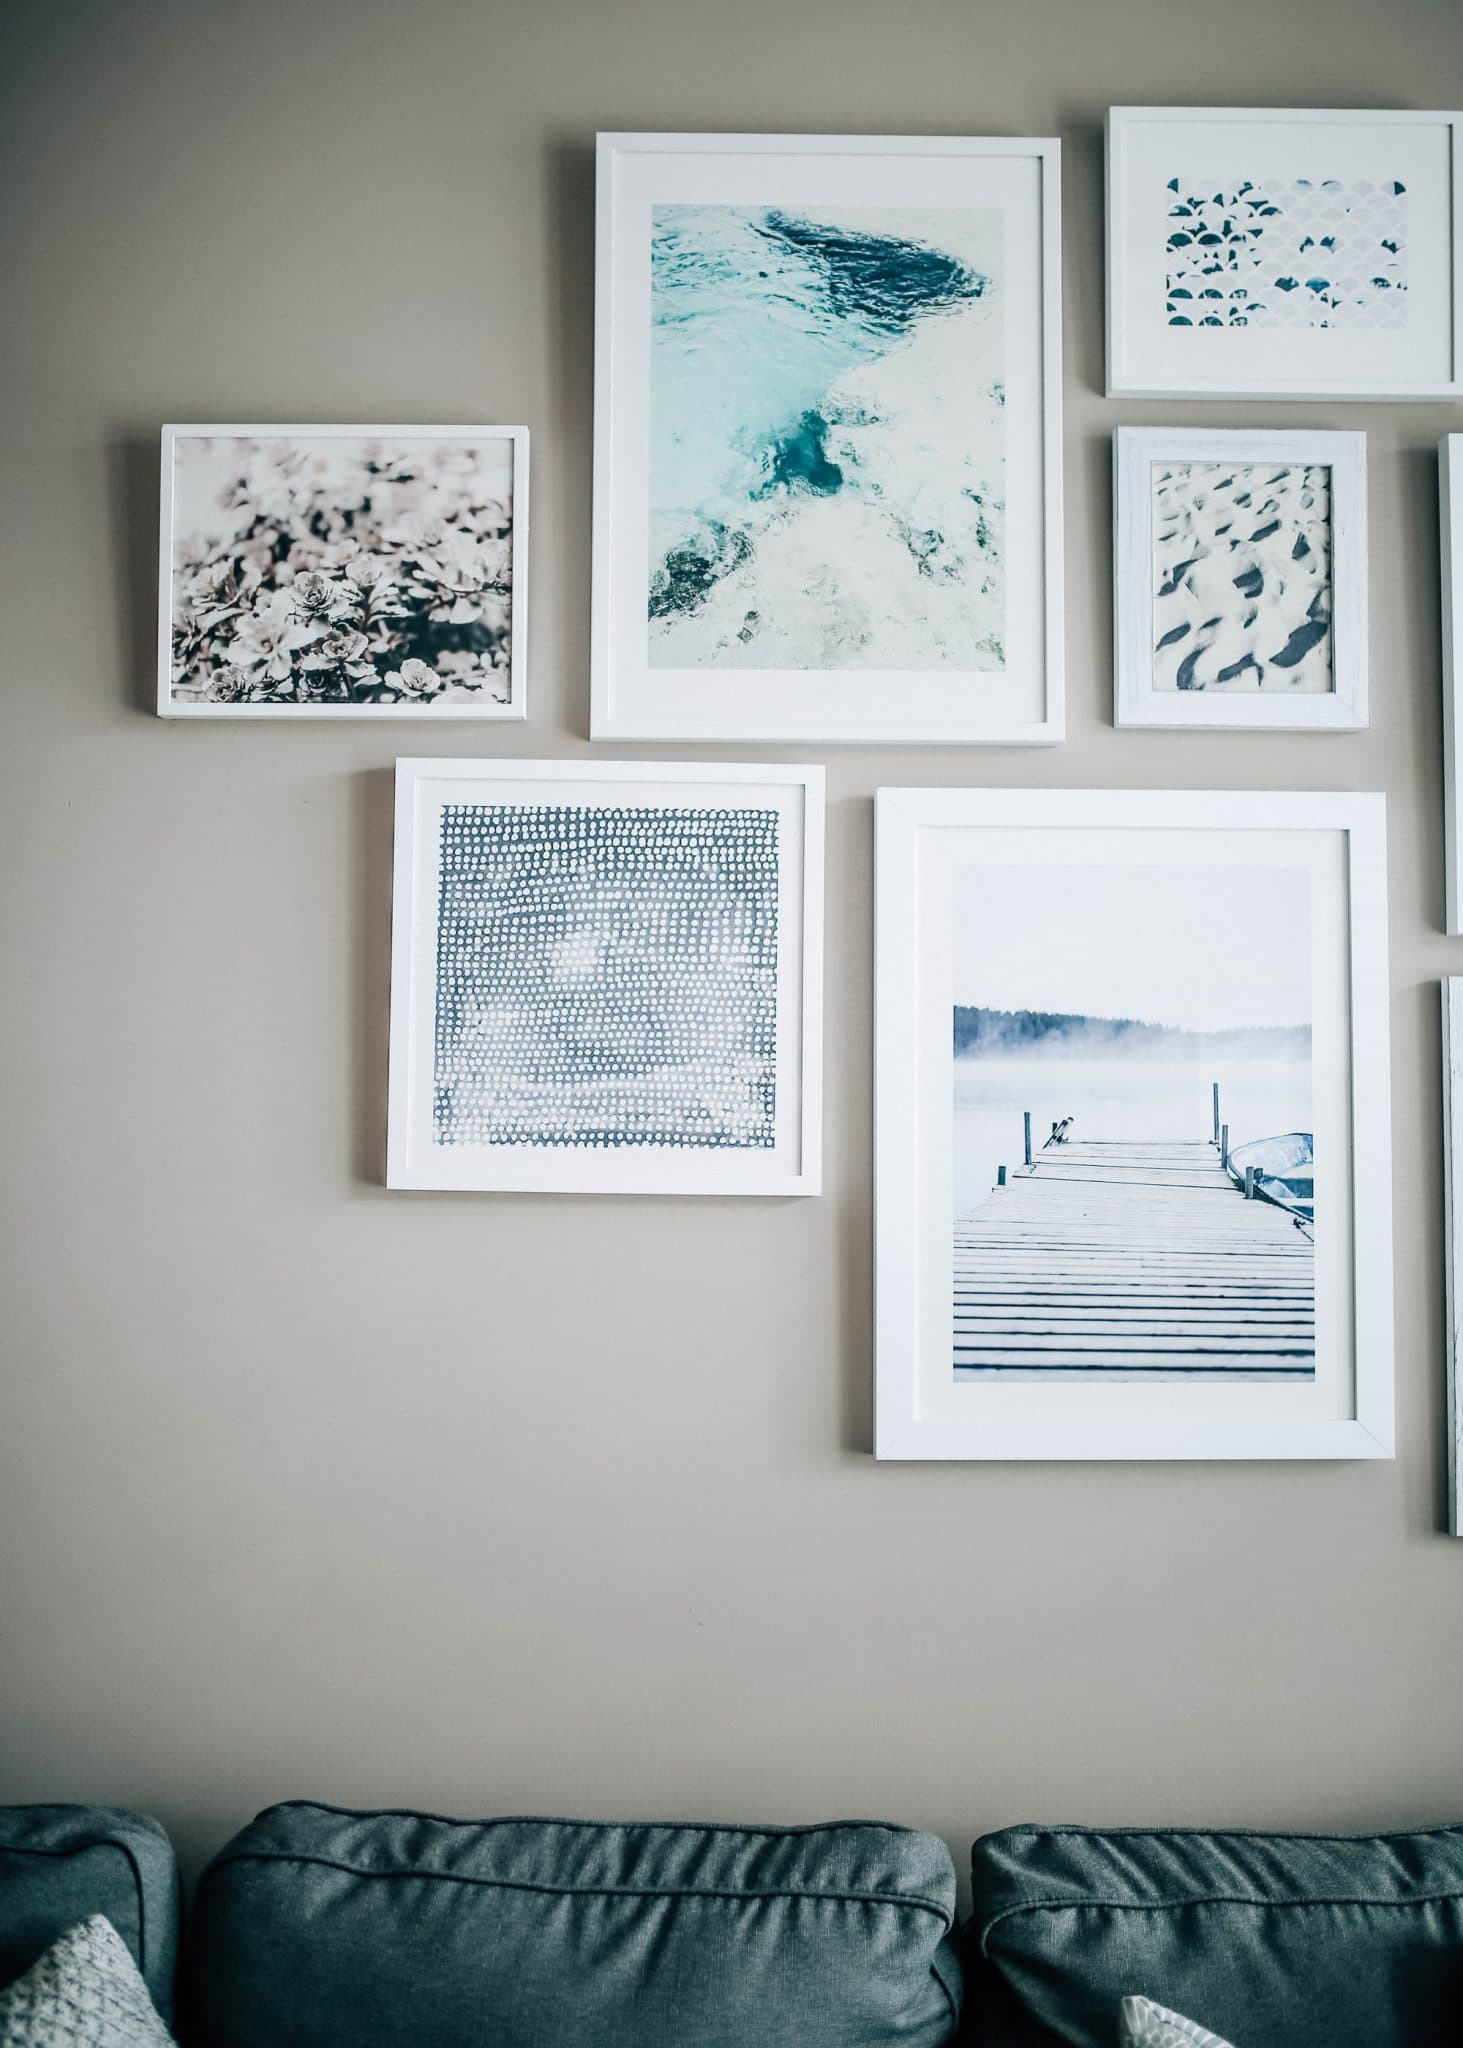 Q: How did you design, create, and hang your gallery wall?